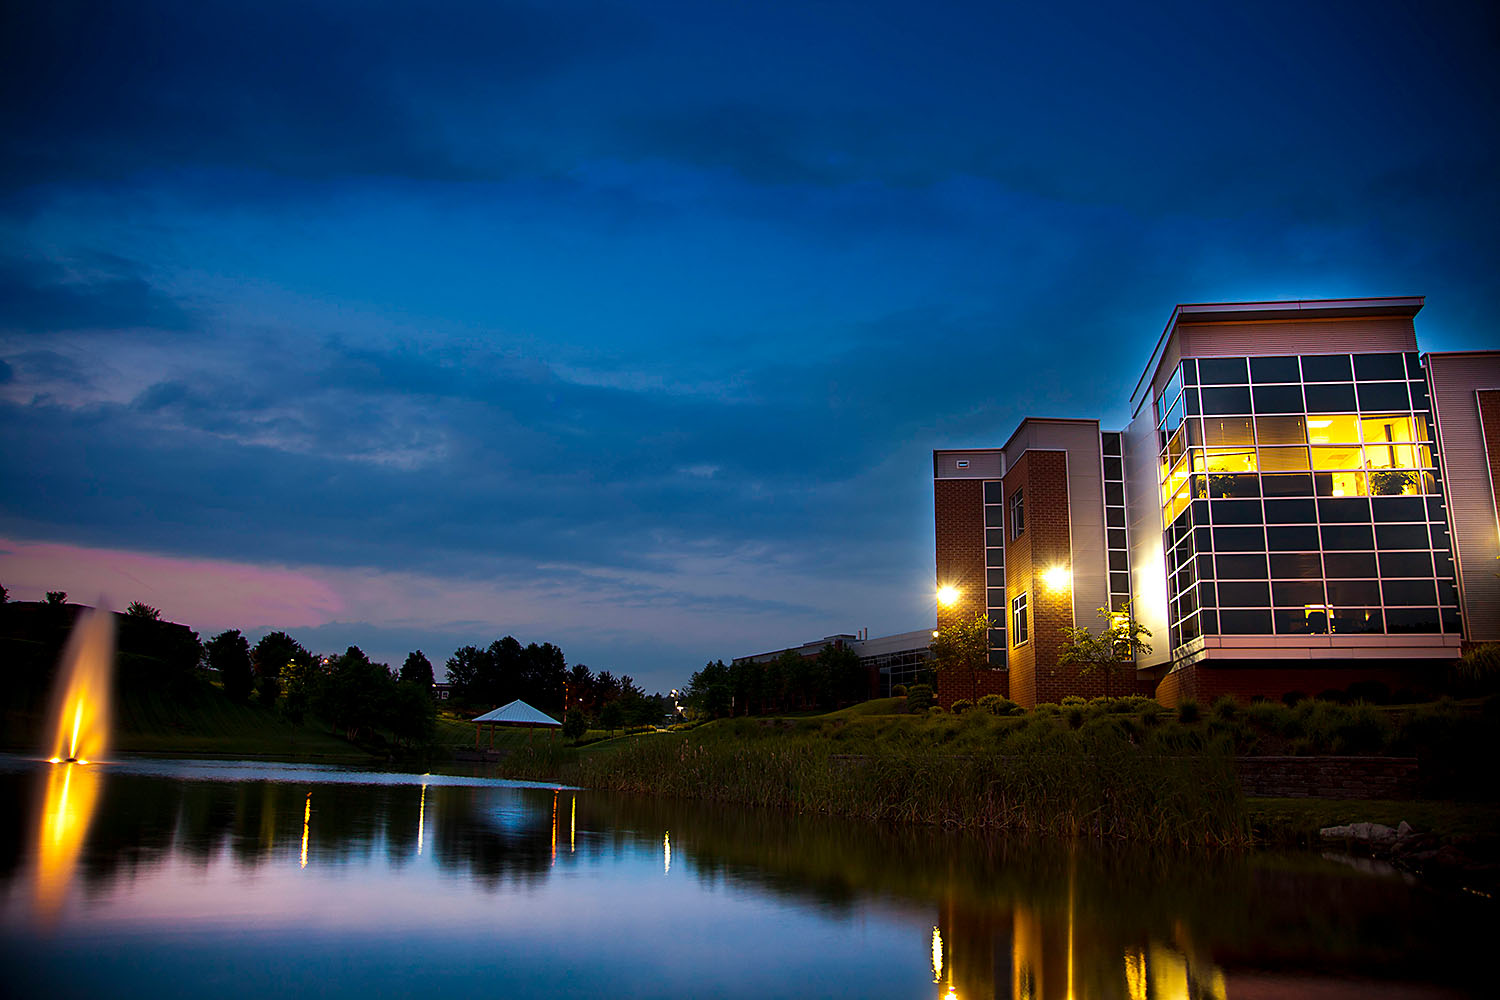 Alacran Consulting is headquartered at the Corporate Research Center at Virginia Polytechnic Institute and State University in Blacksburg, Virginia. PHOTO: ©CRC